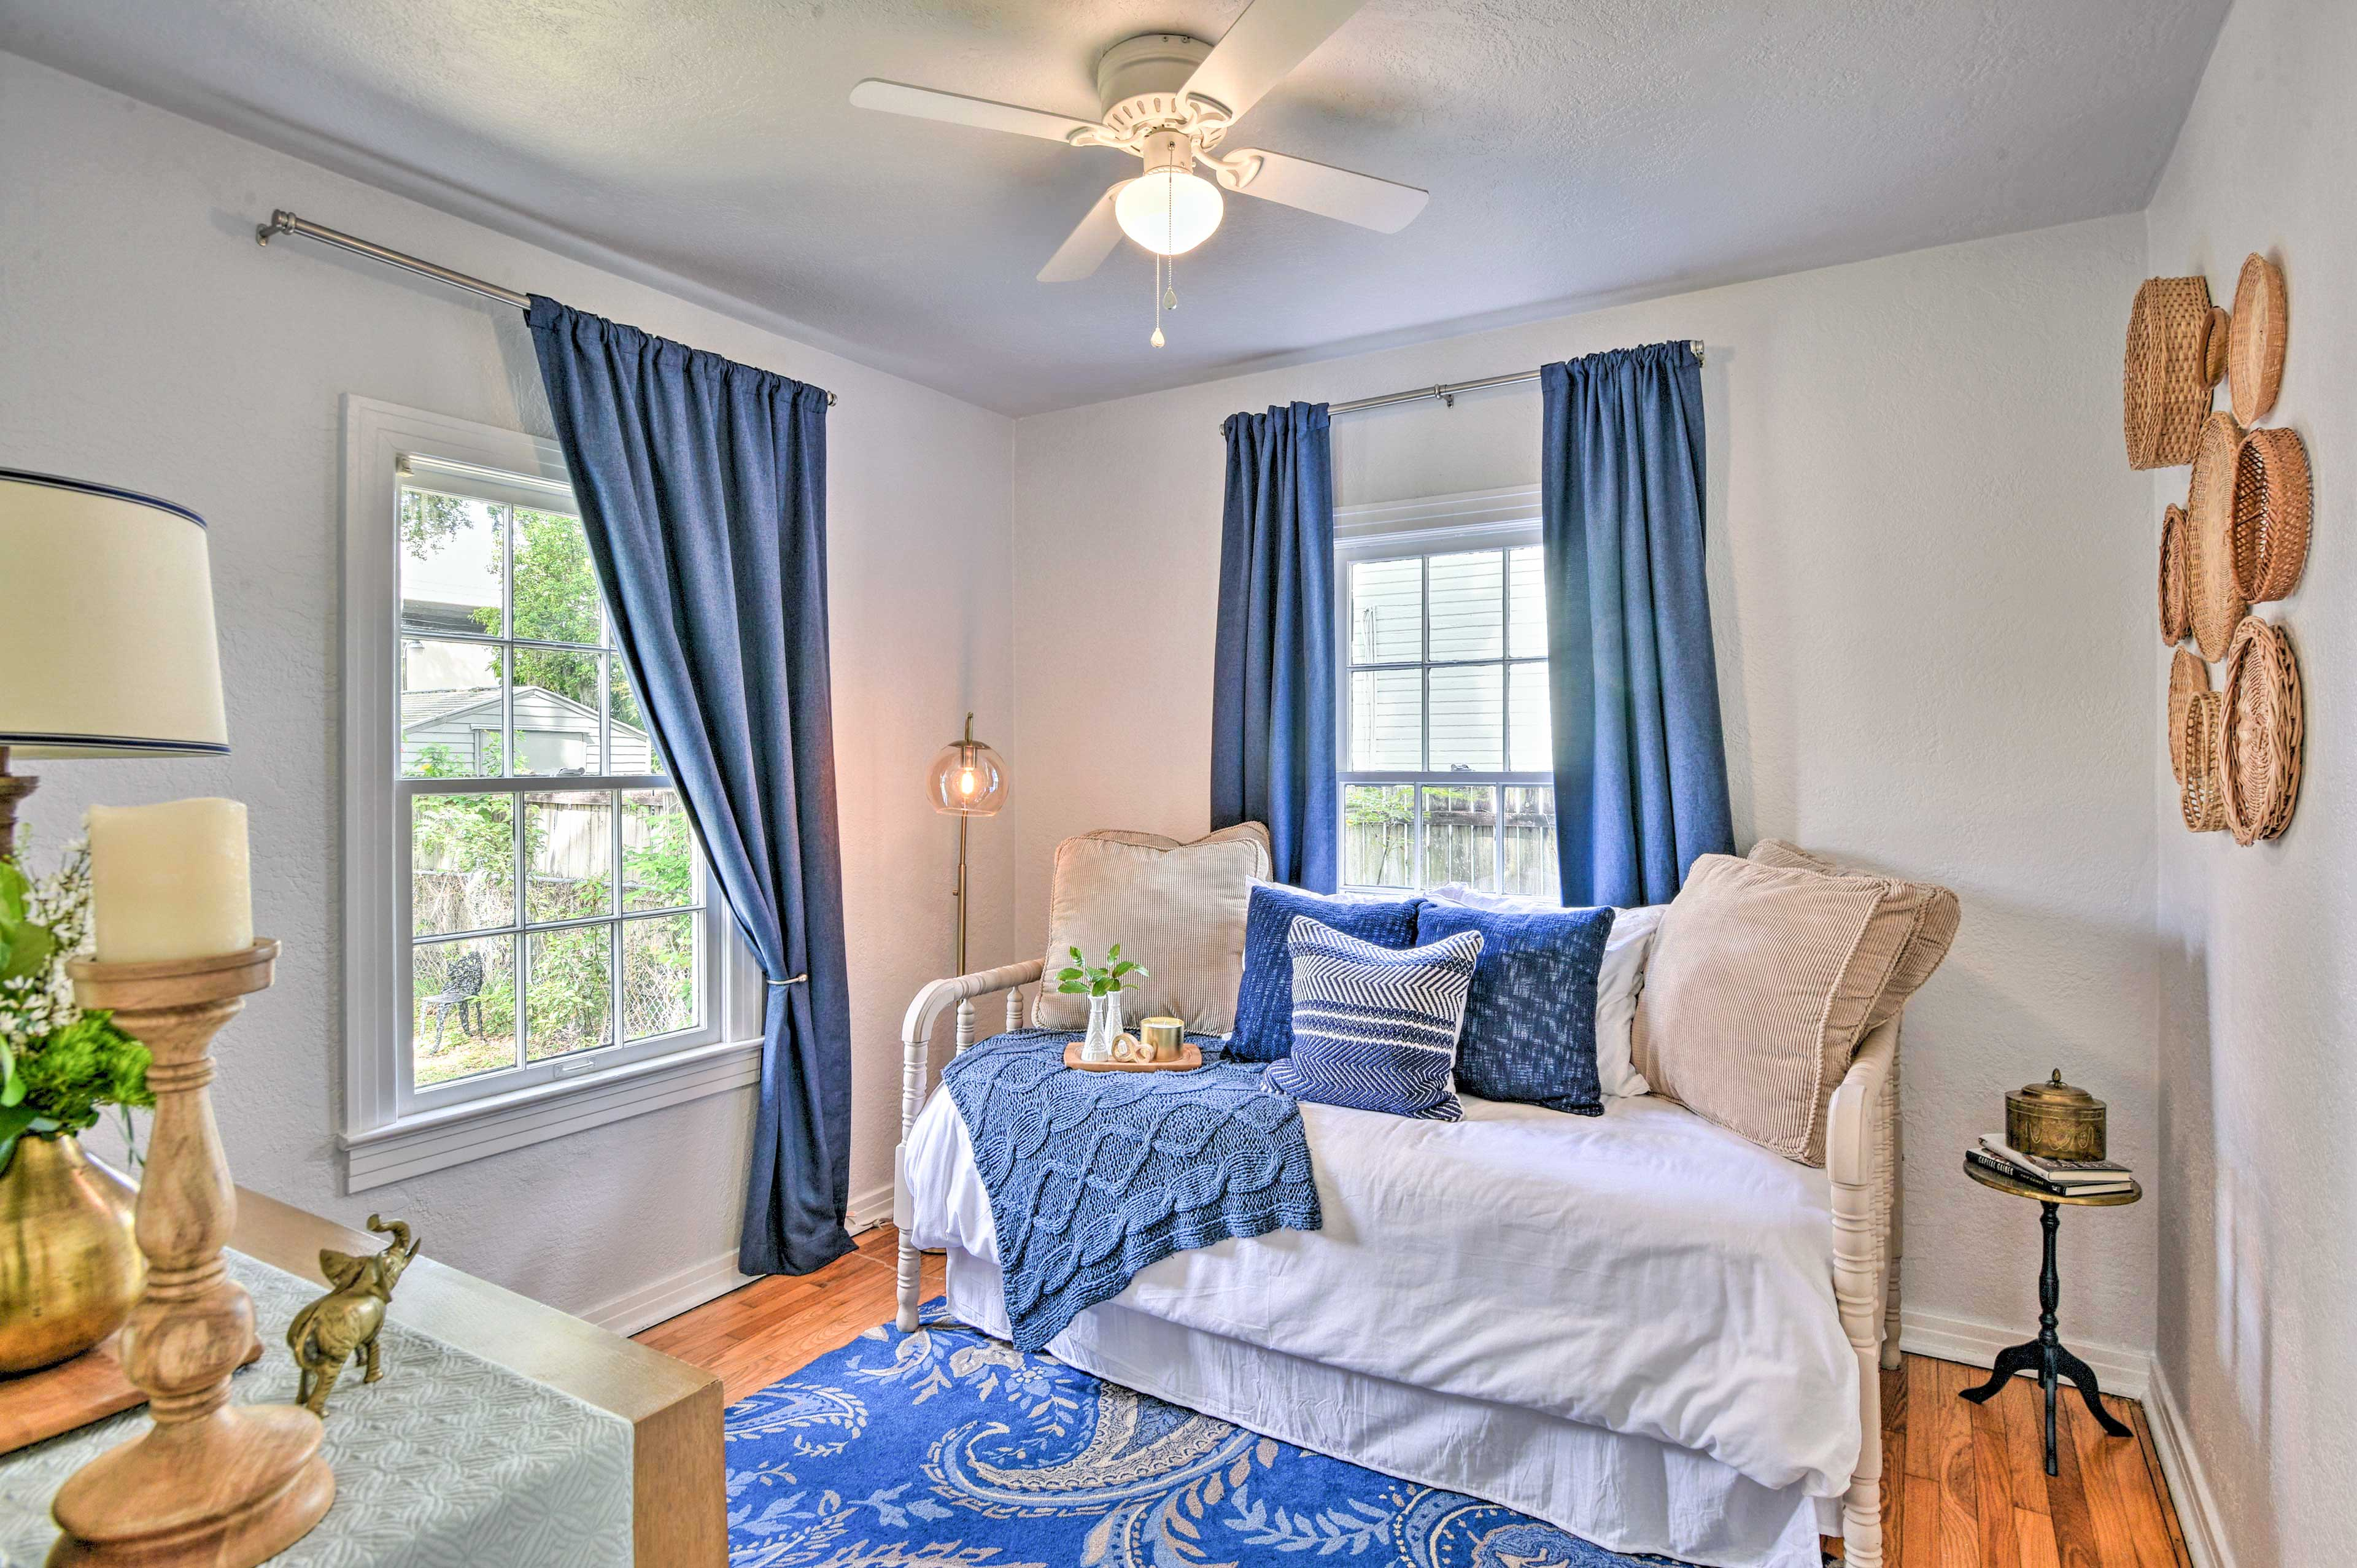 The second bedroom features a twin bed and a twin trundle.